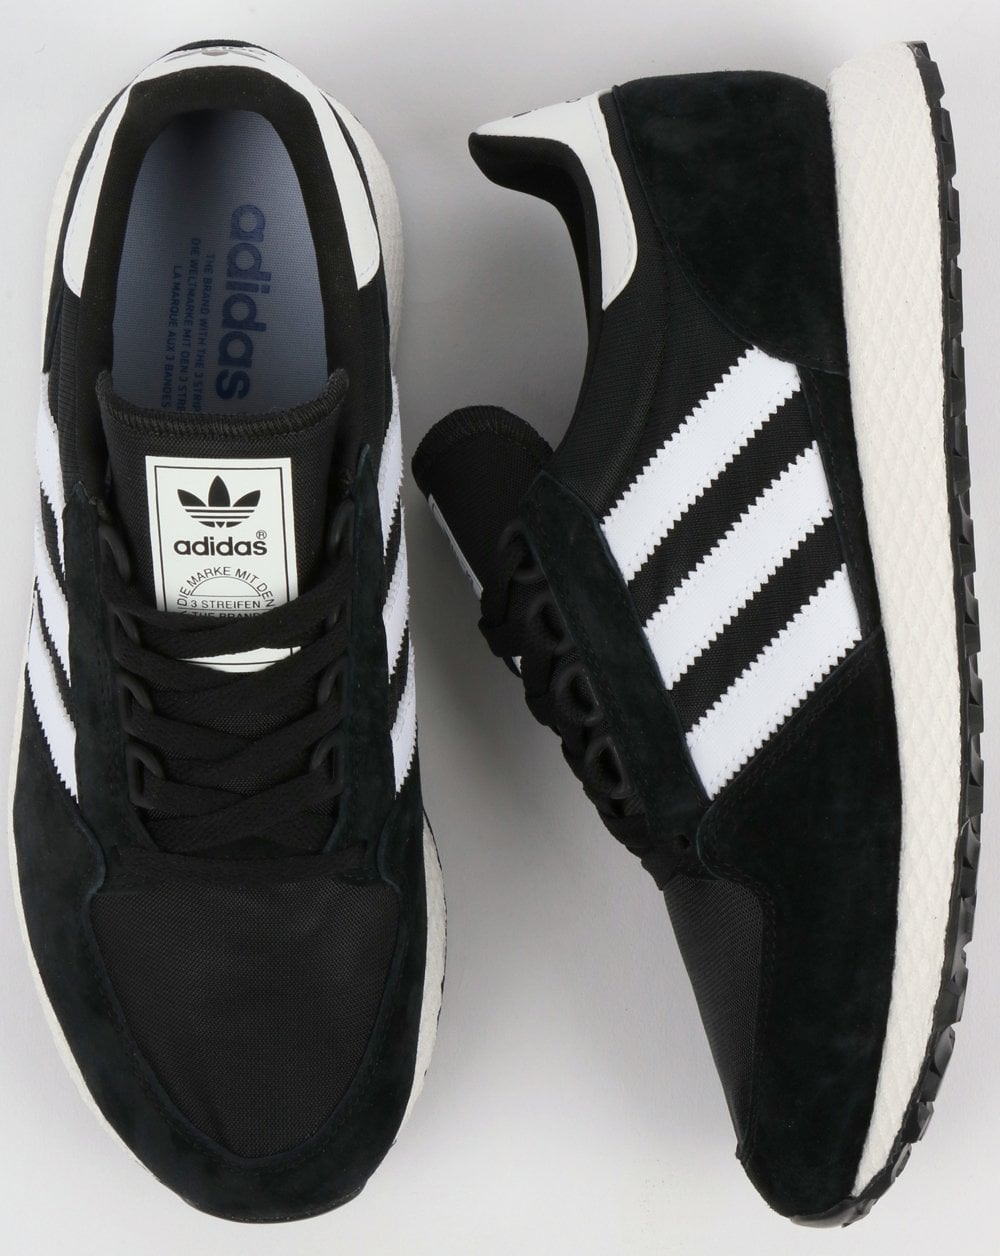 premium selection 63e1a 90d4f adidas Trainers Adidas Forest Grove Trainers BlackWhite